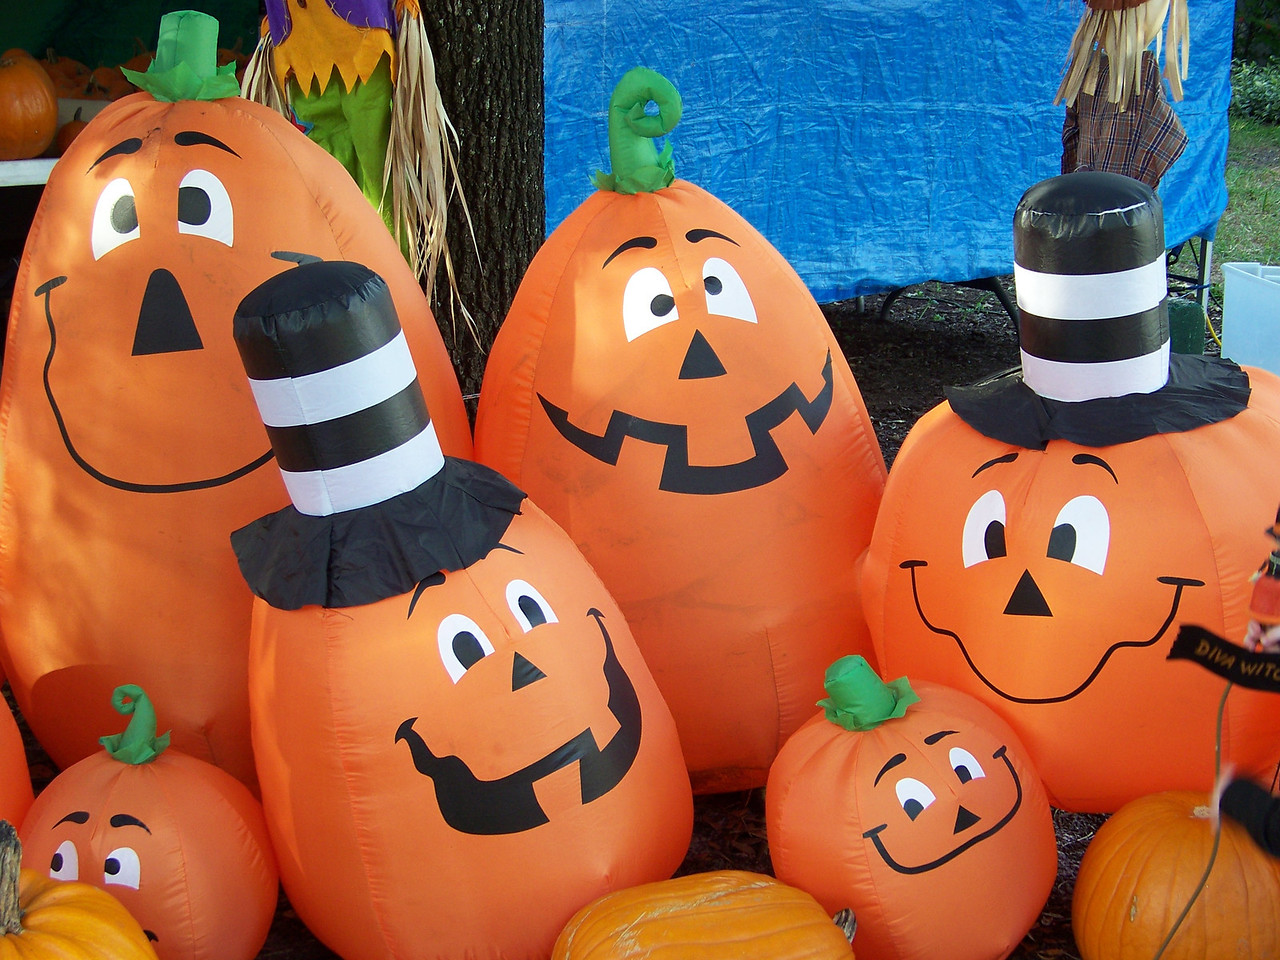 Halloween decorations at the pumpkin patch.<br /> [Celebration, Florida]